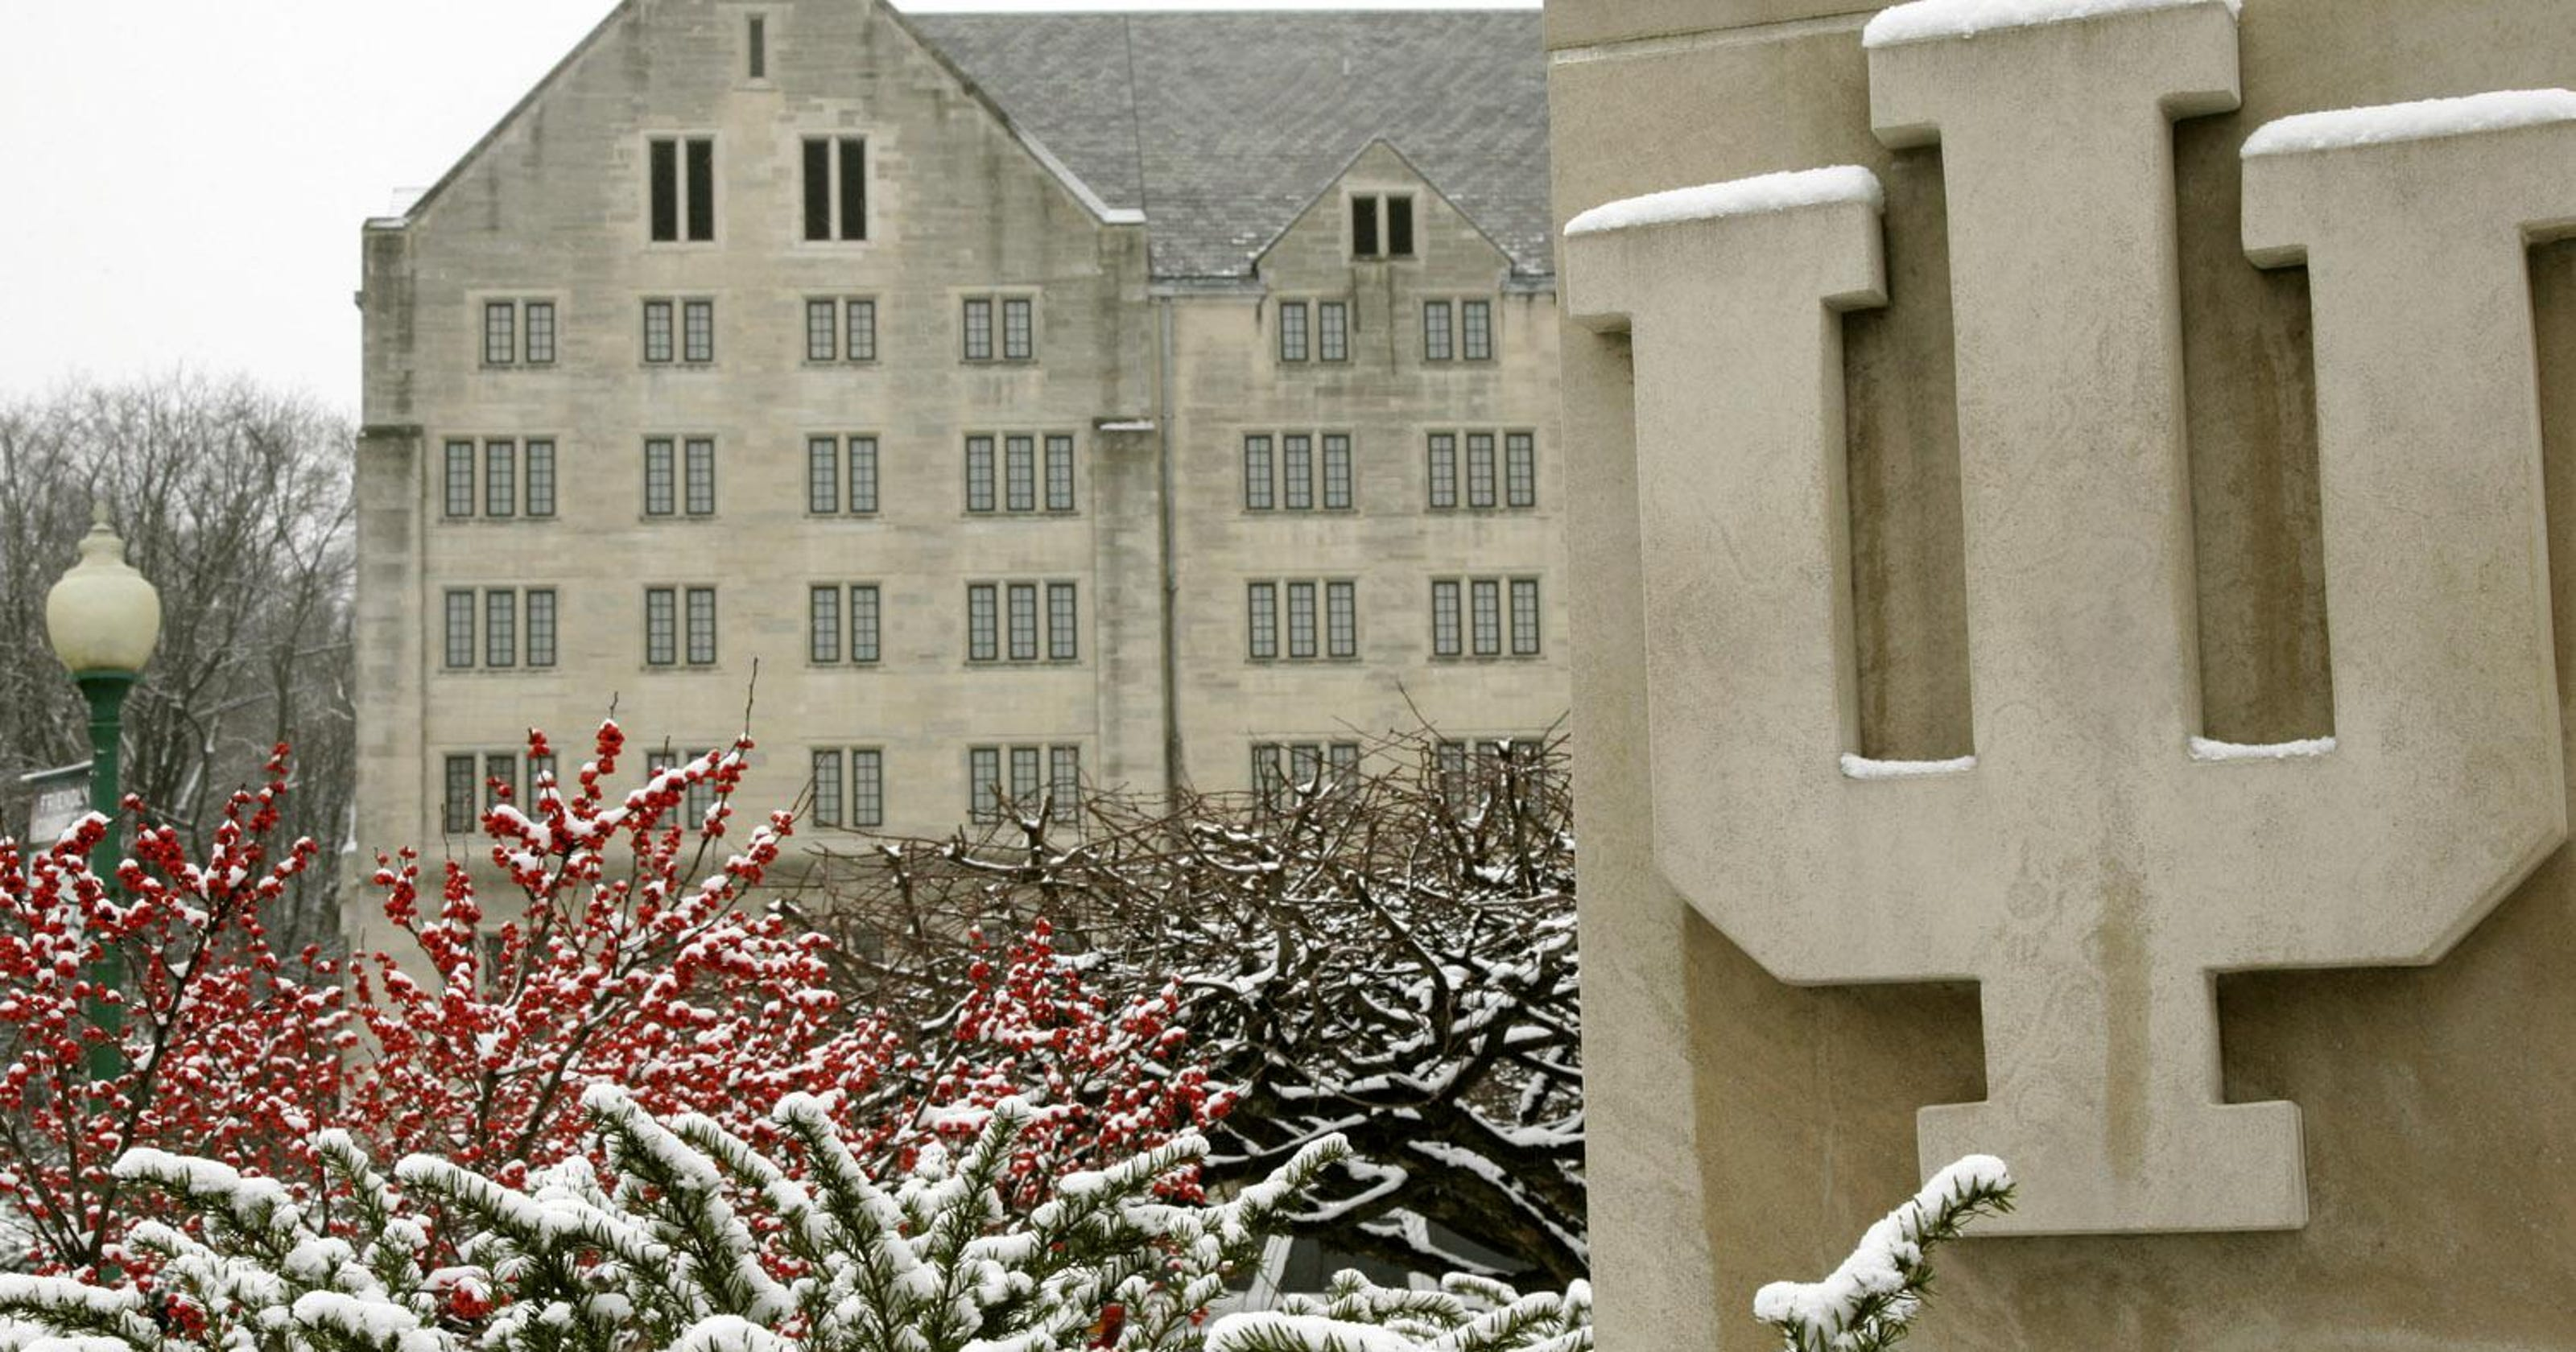 IU students decry Koch foundation grant